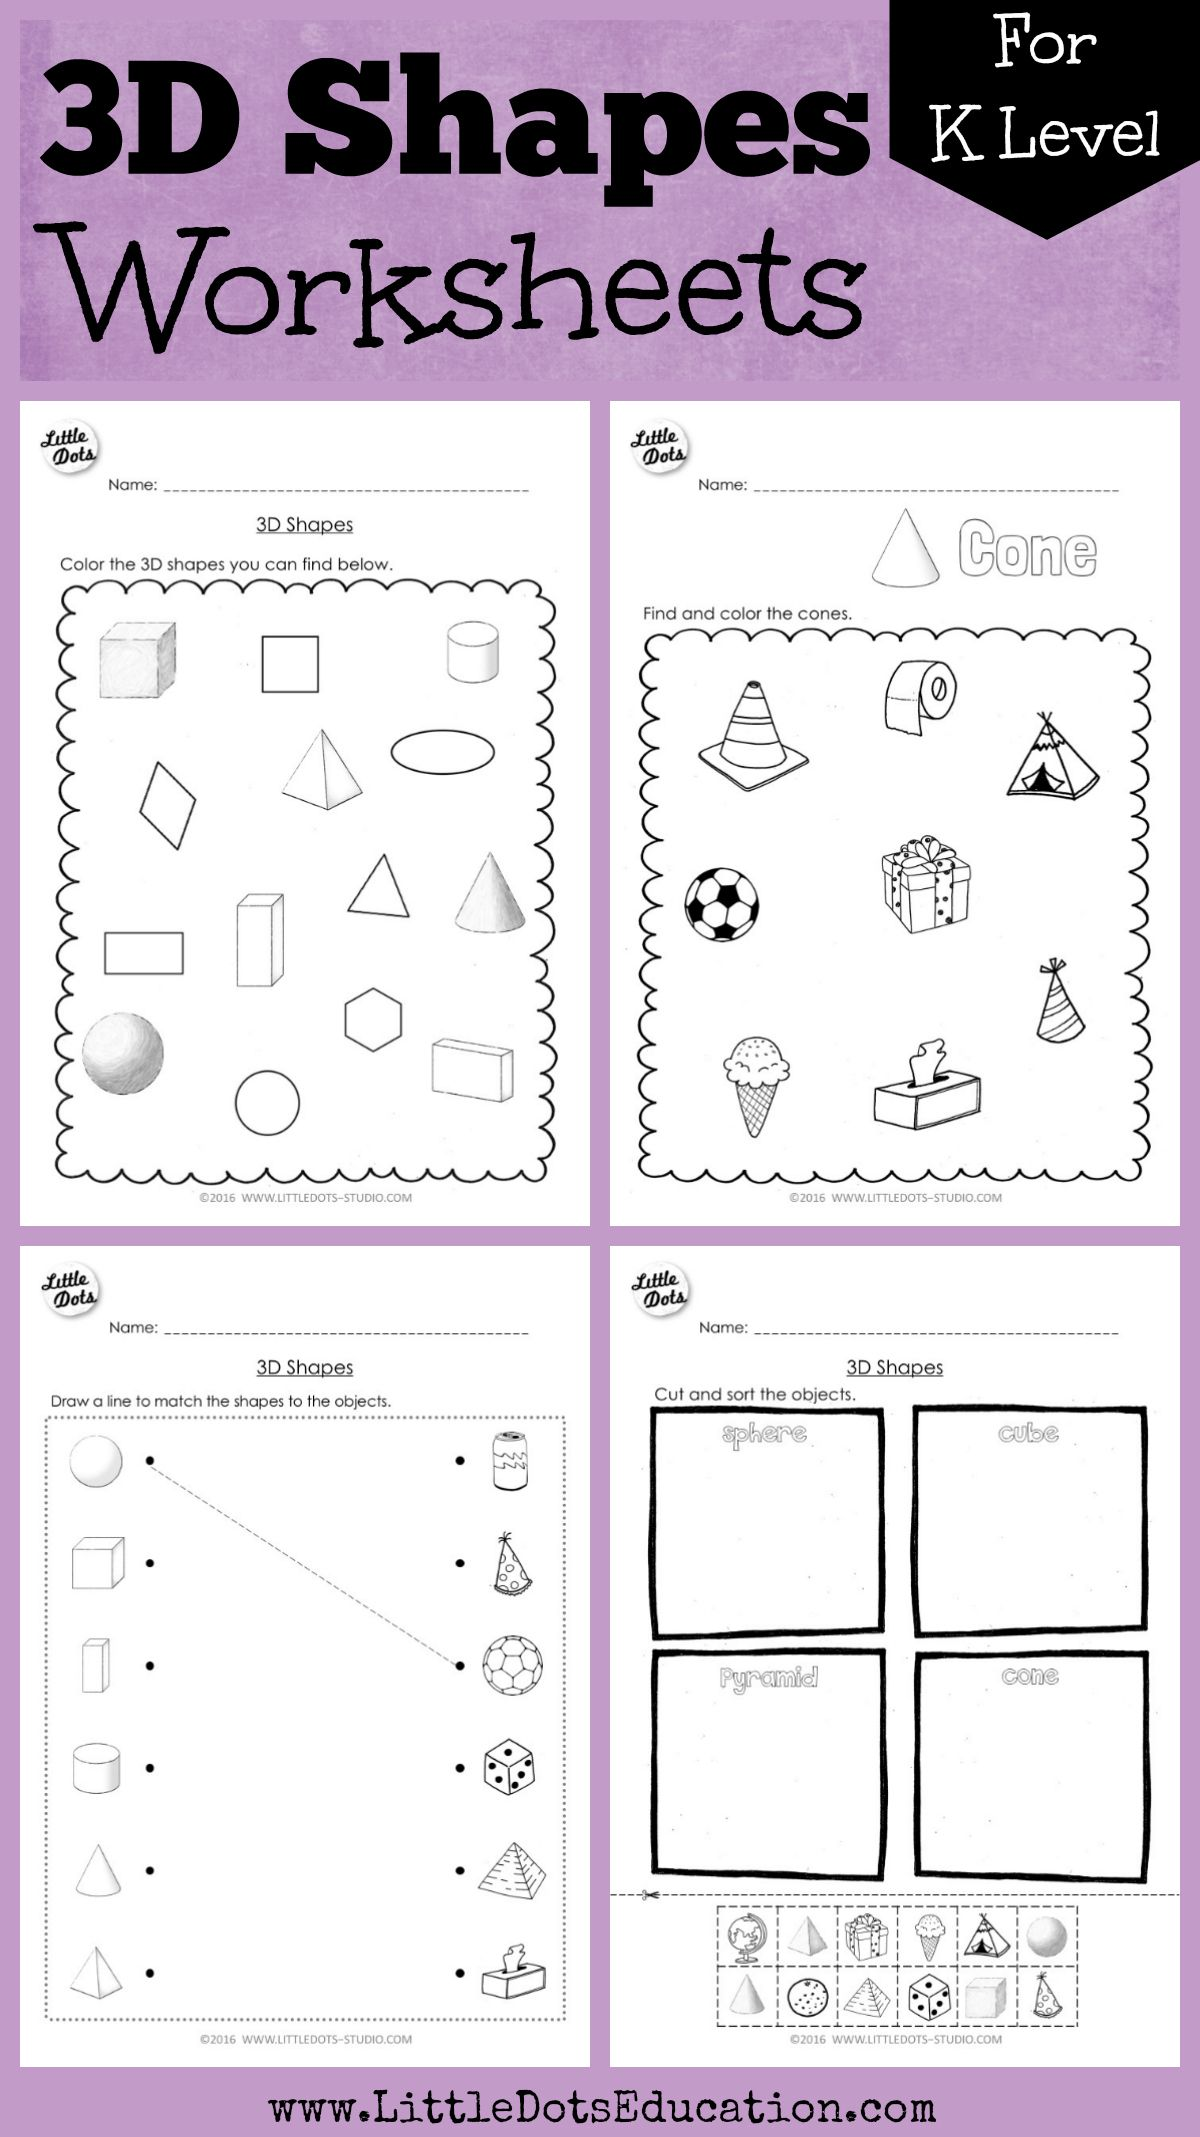 Download 3D or solid shapes worksheets and activities on cube, cylinder,  cone, pyramid